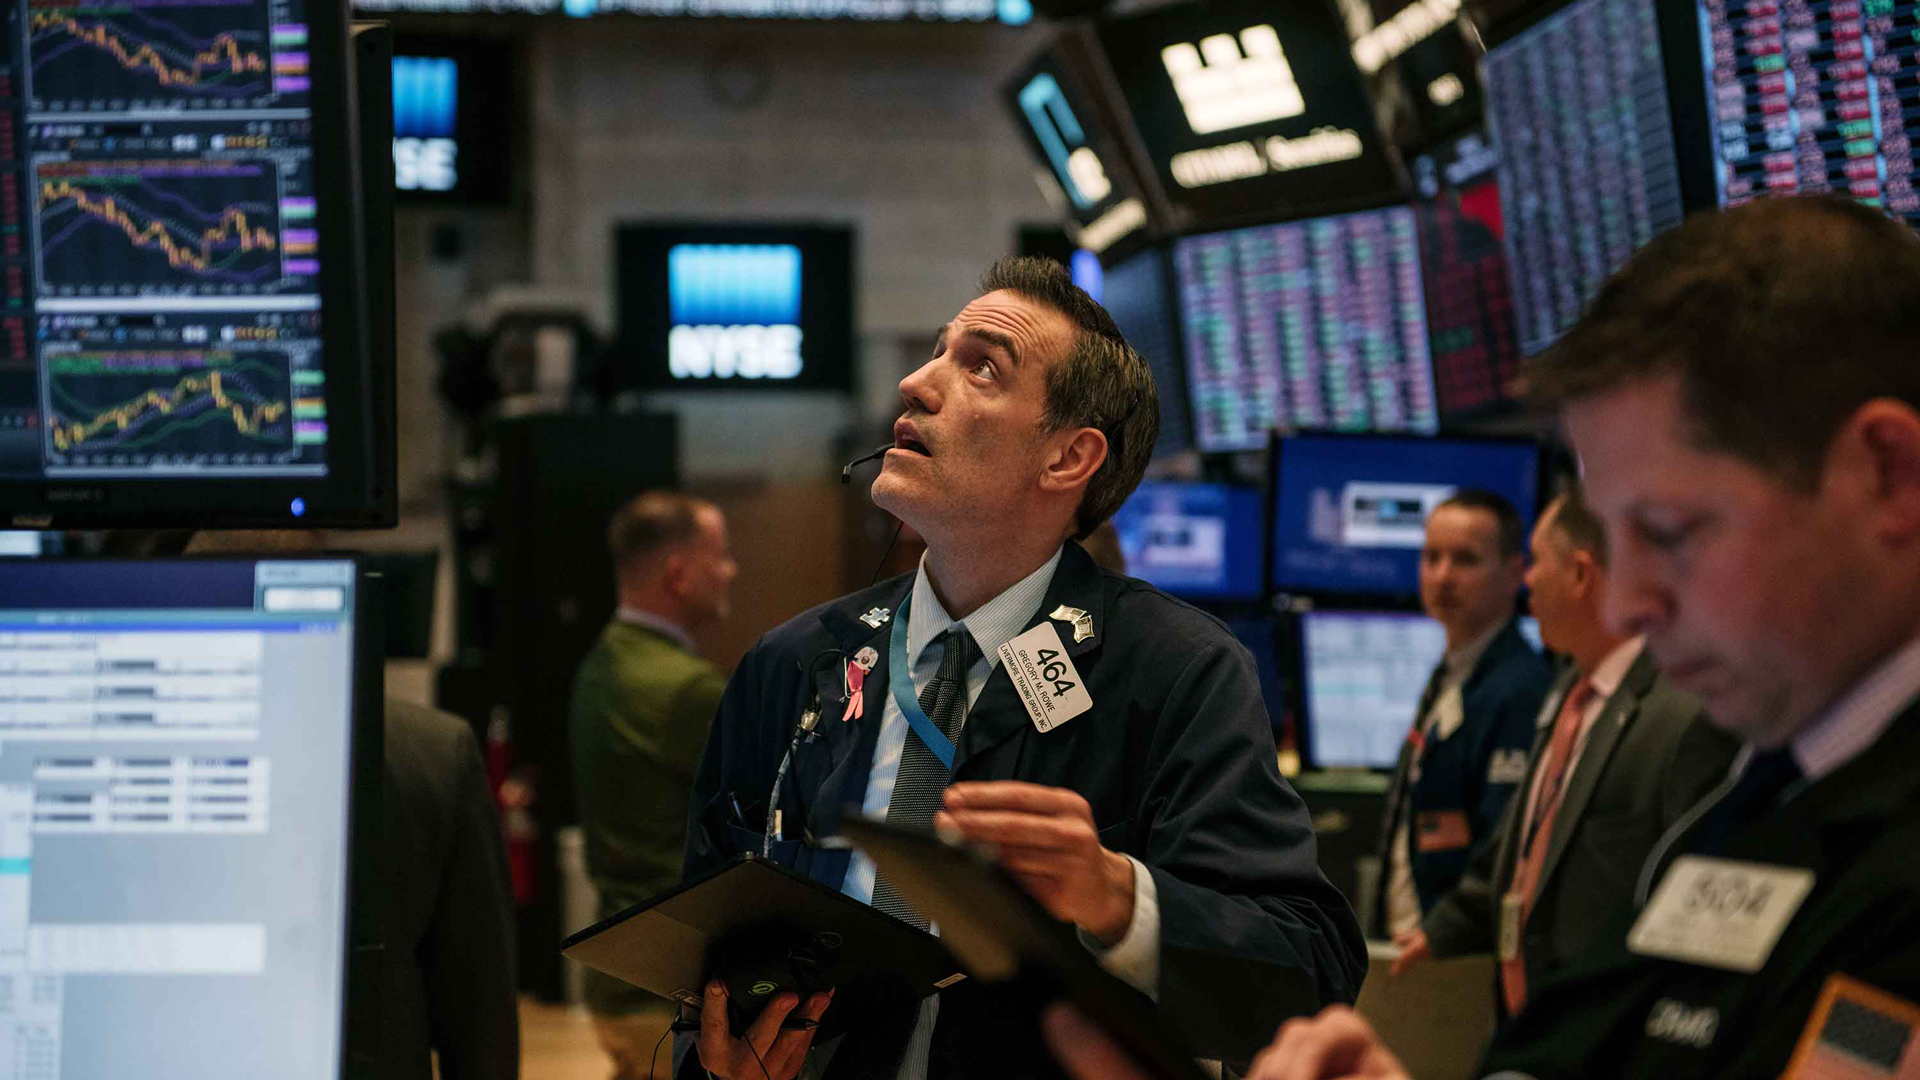 Traders work through the closing minutes of trading Tuesday on the New York Stock Exchange floor on February 25, 2020 in New York City. (Scott Heins/Getty Images)